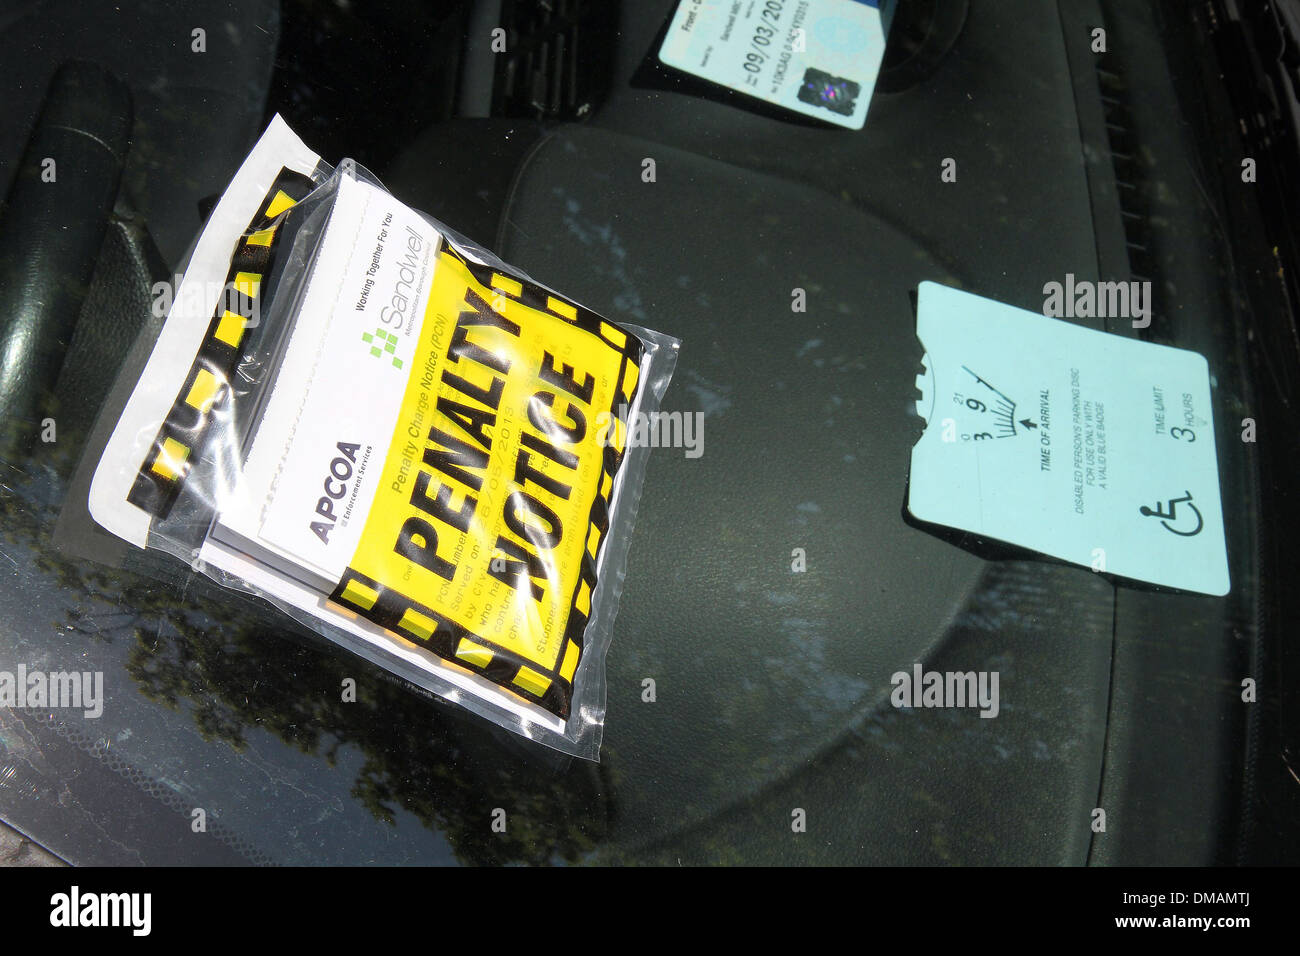 A parking ticket on a car. - Stock Image